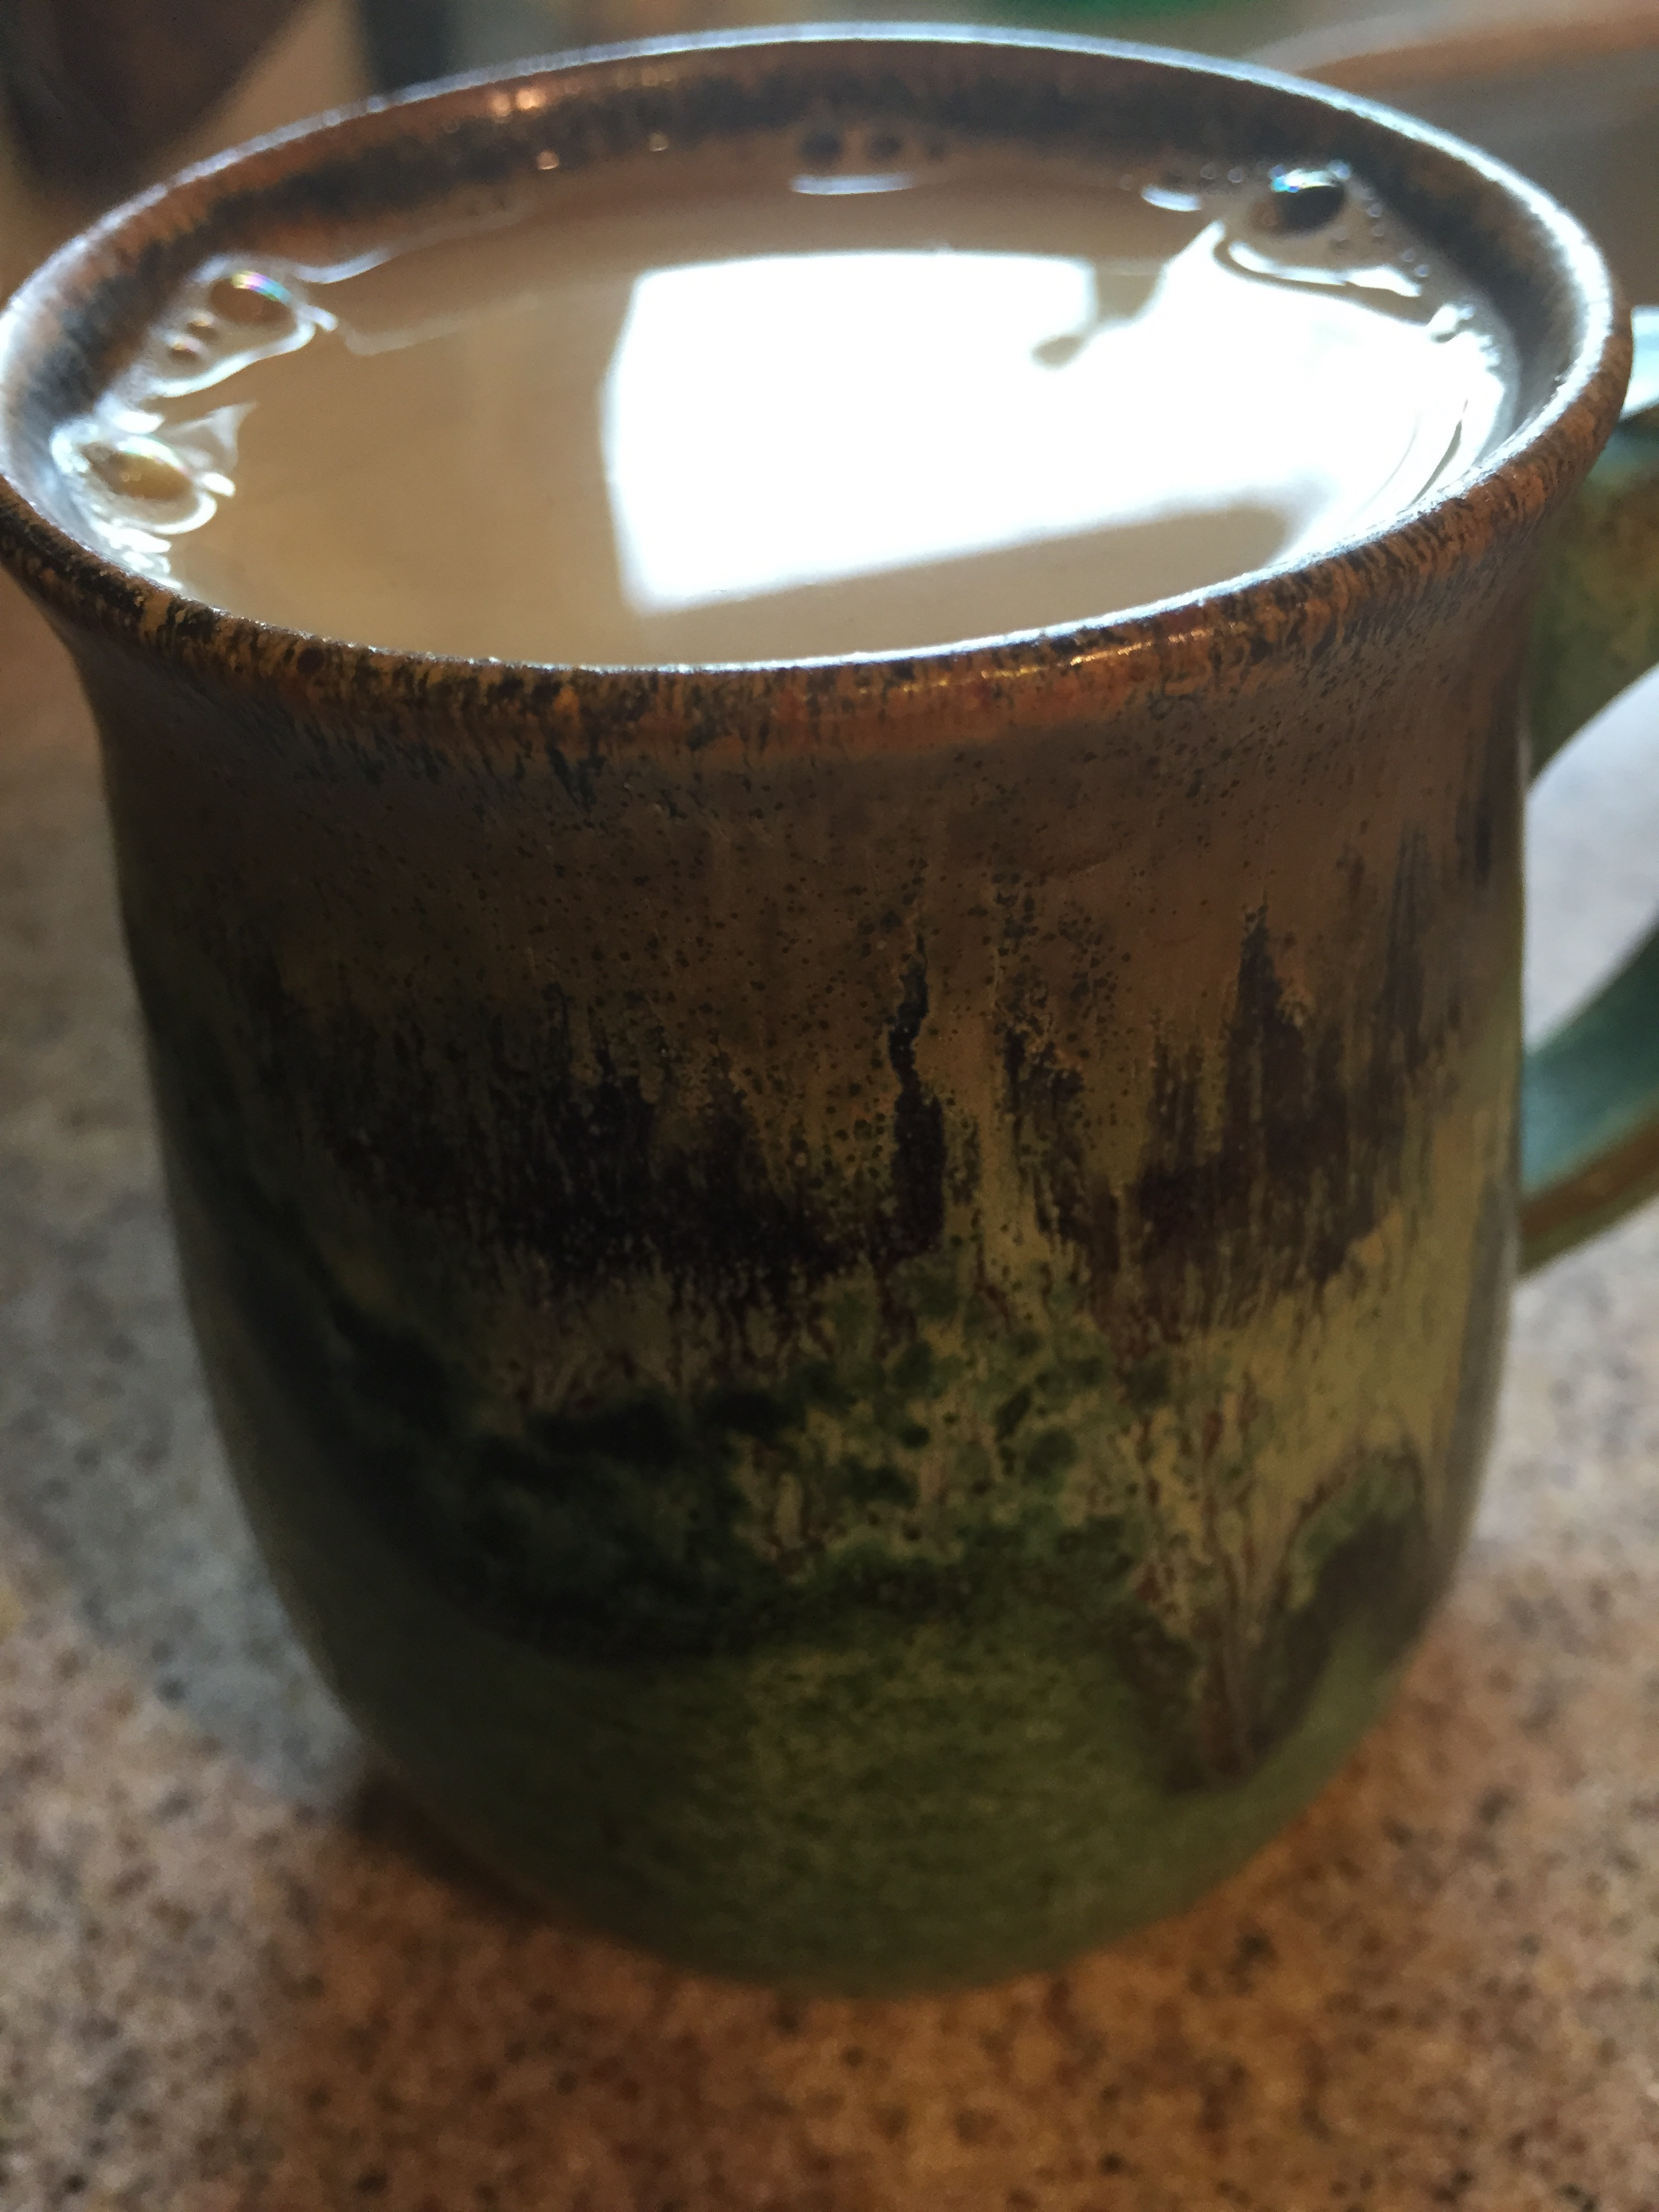 This was an afternoon cup of joe that I did add cream too :) Sometimes you need to soften things, but that's a post for another day.